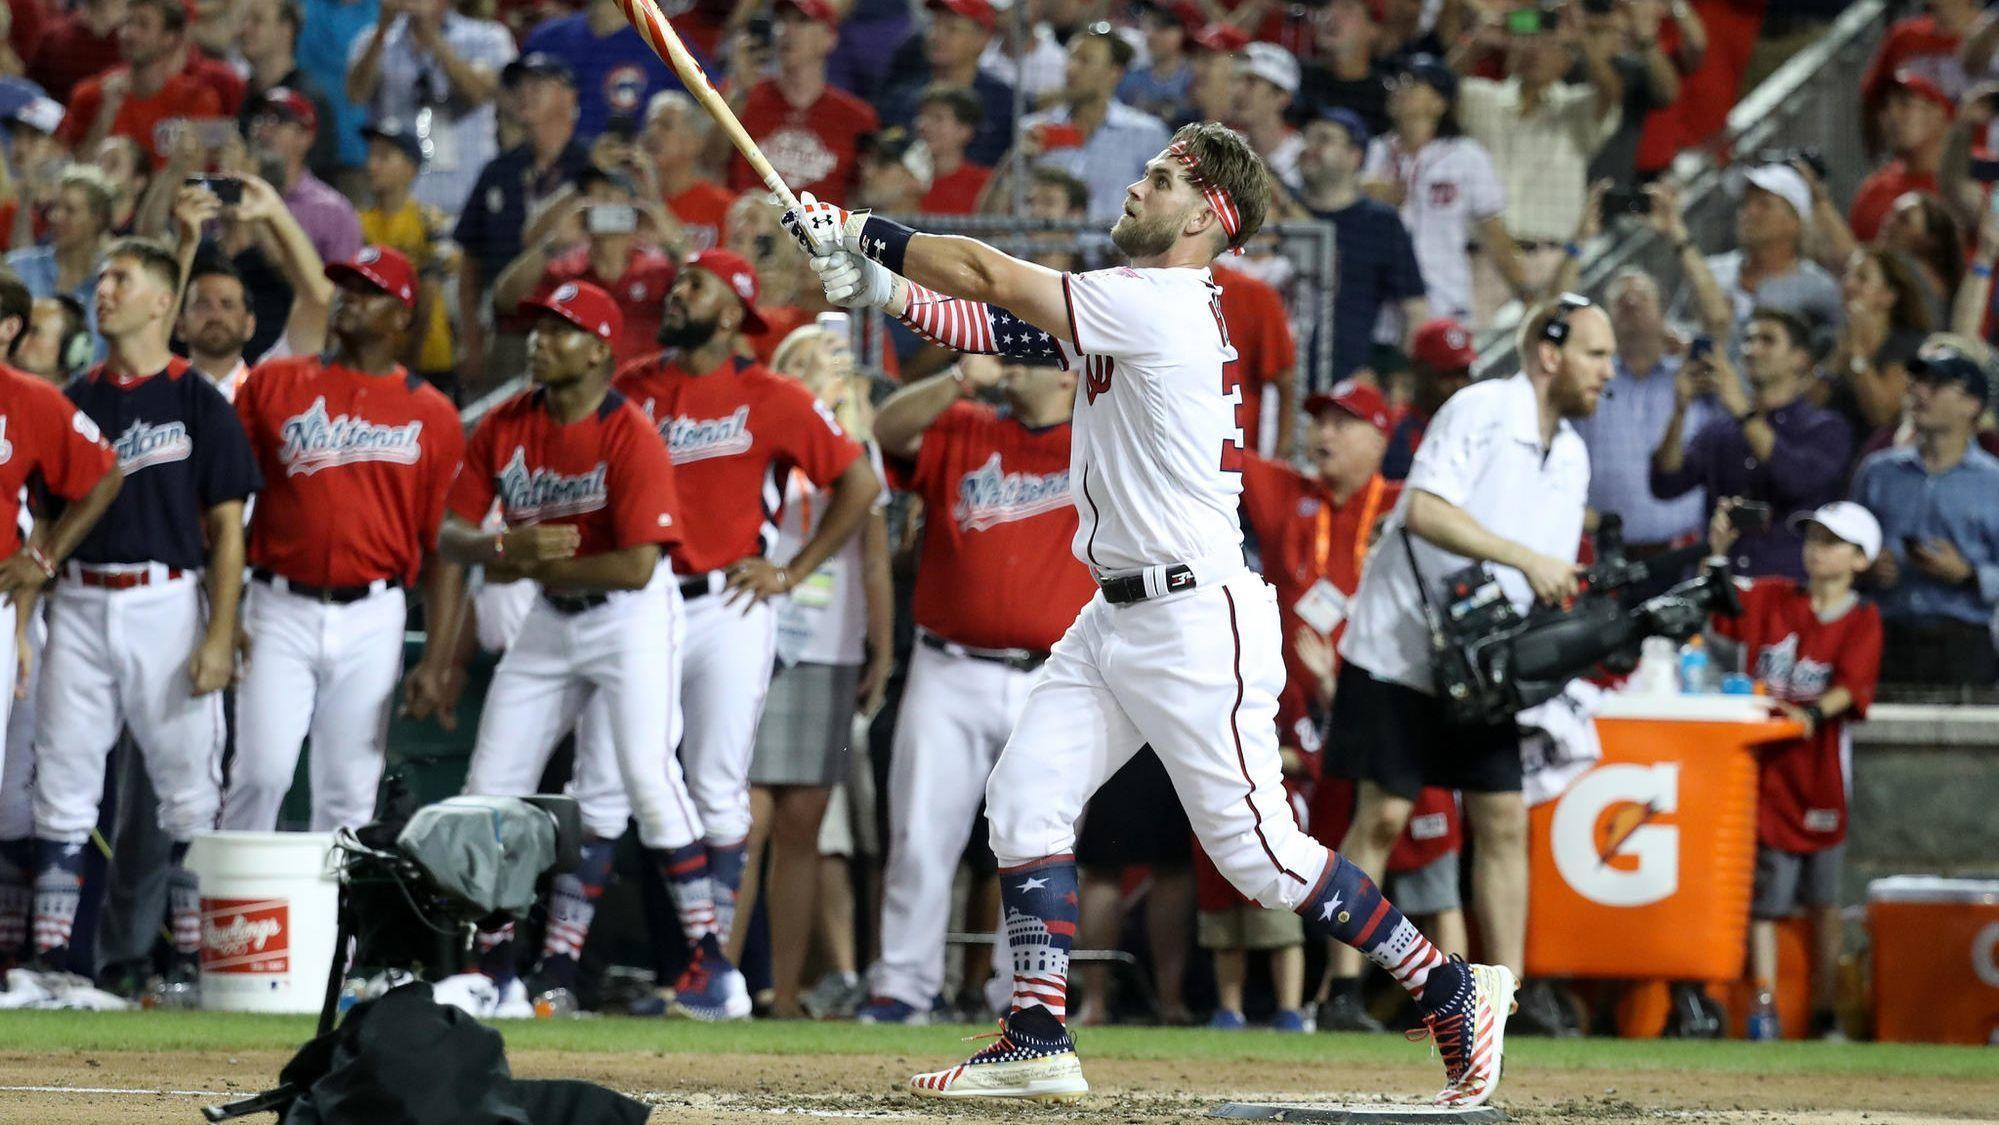 Bs-sp-all-star-home-run-derby-story-20180716